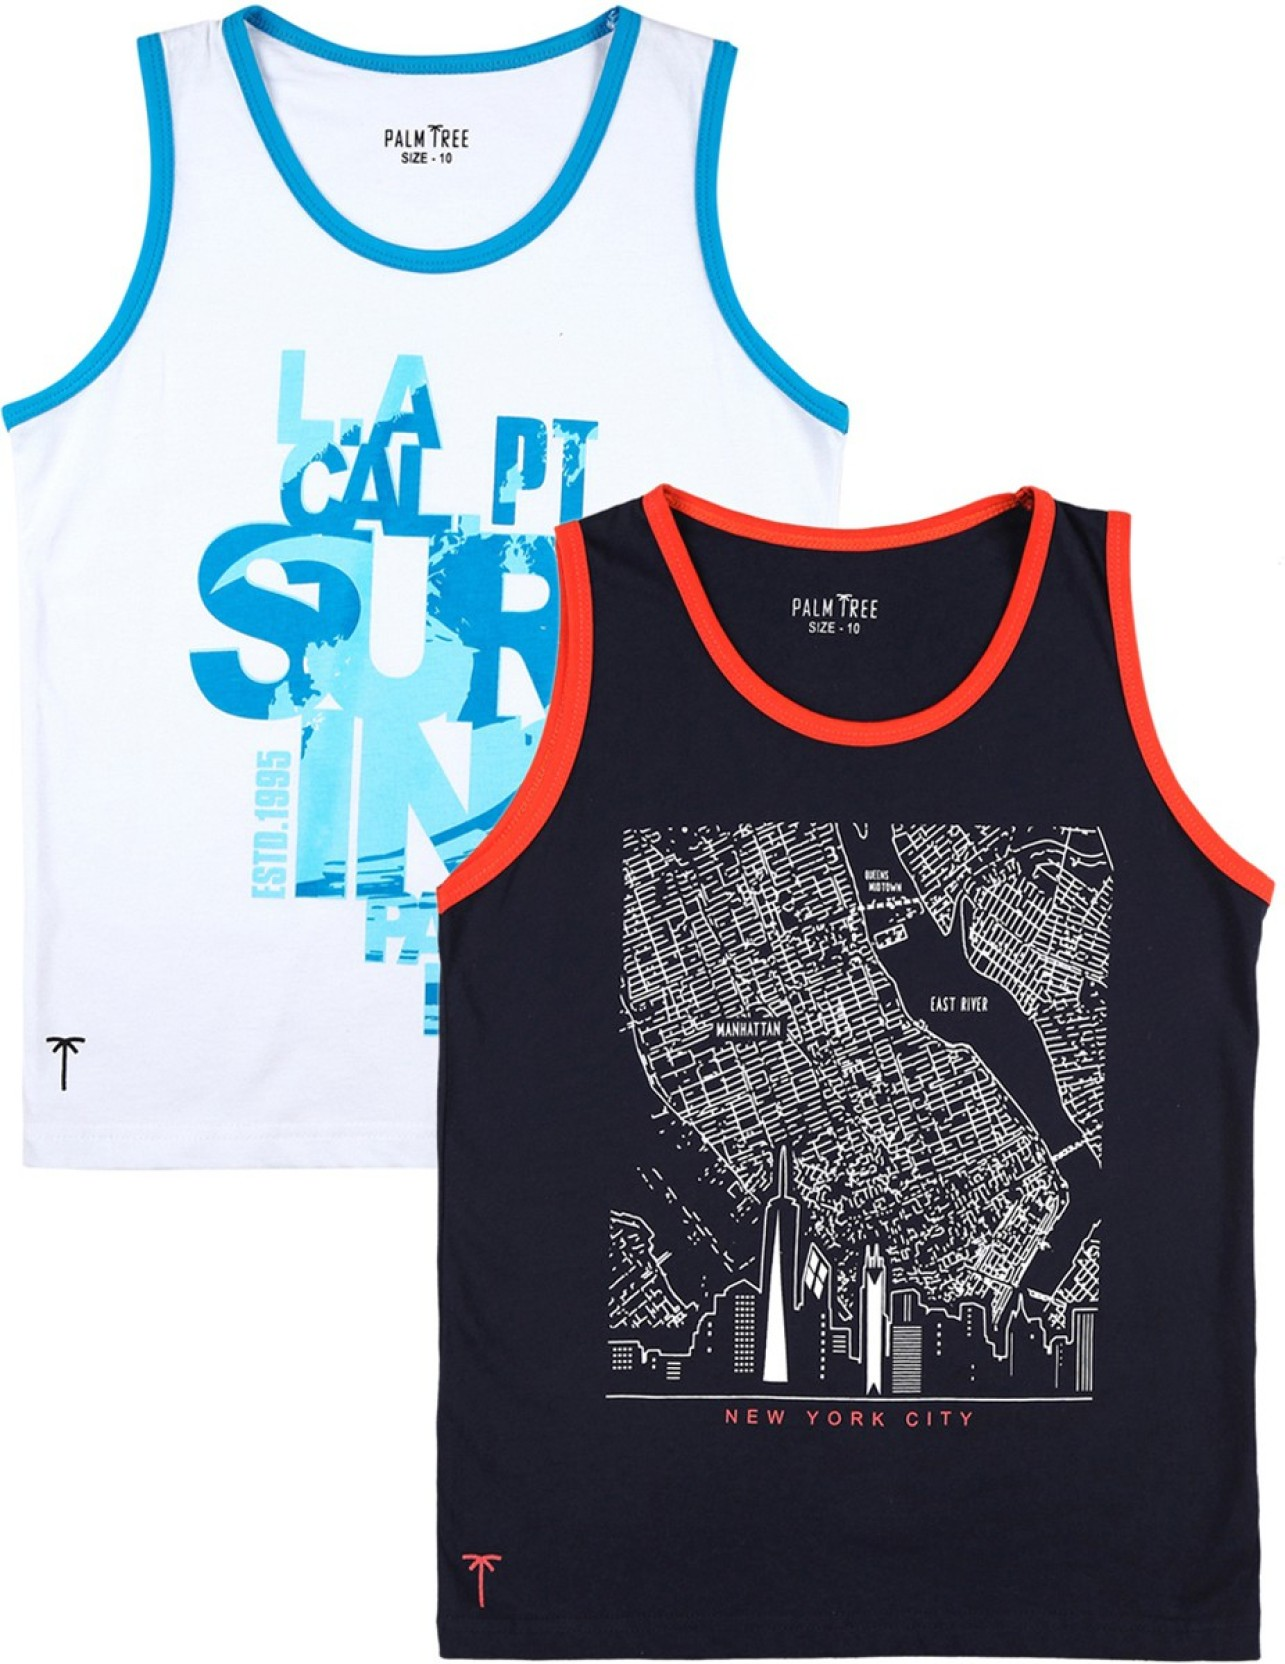 c6e9ce43 Sleeveless T Shirts Flipkart - DREAMWORKS